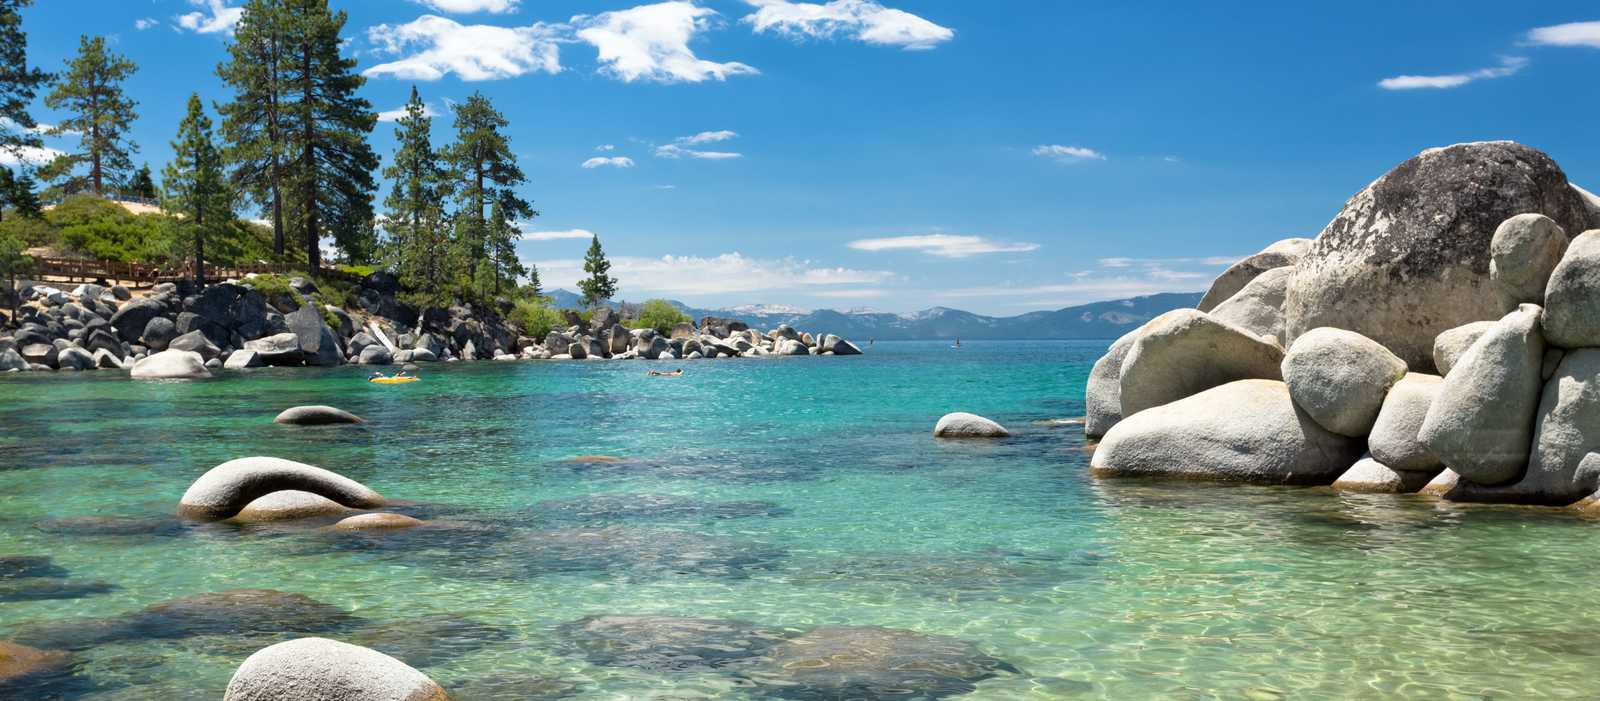 der Lake Tahoe in Nevada